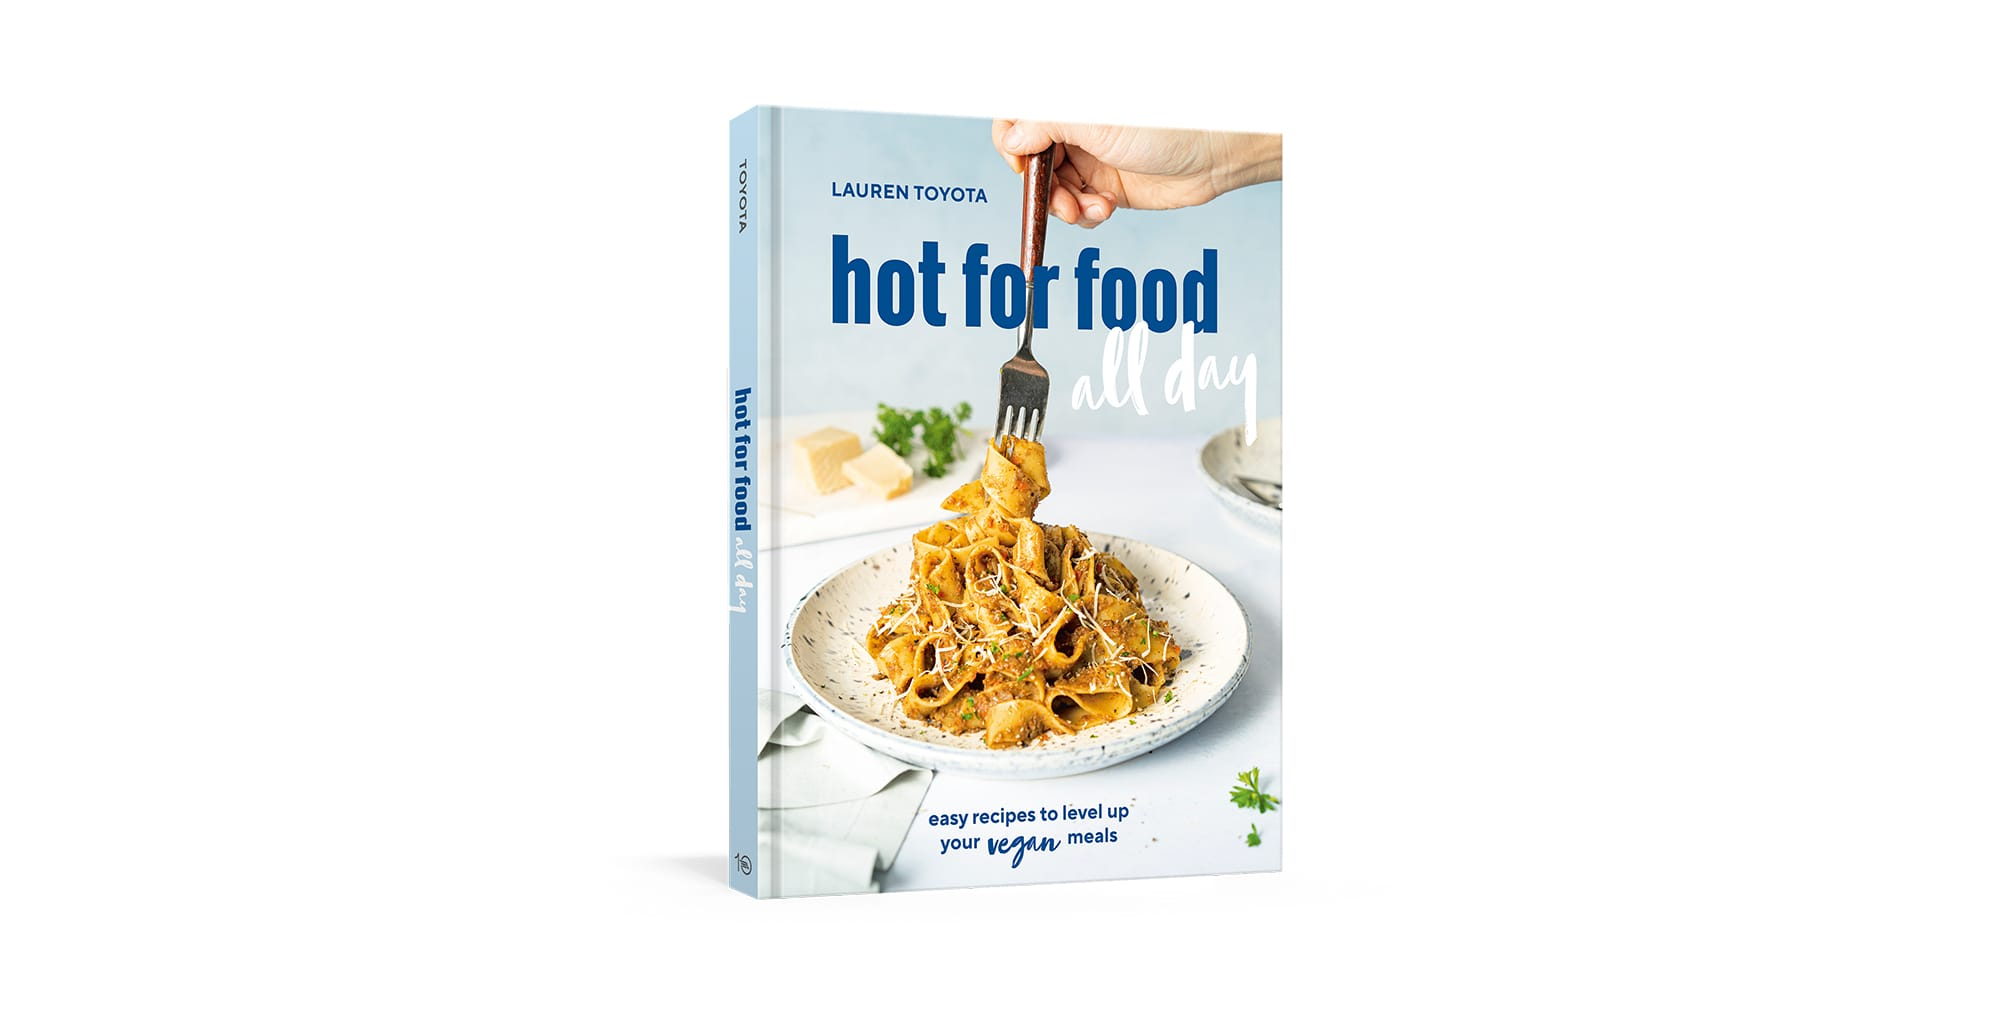 Hot for Food 's Lauren Toyota Announces Details Surrounding Next Cookbook:  Hot for Food All Day